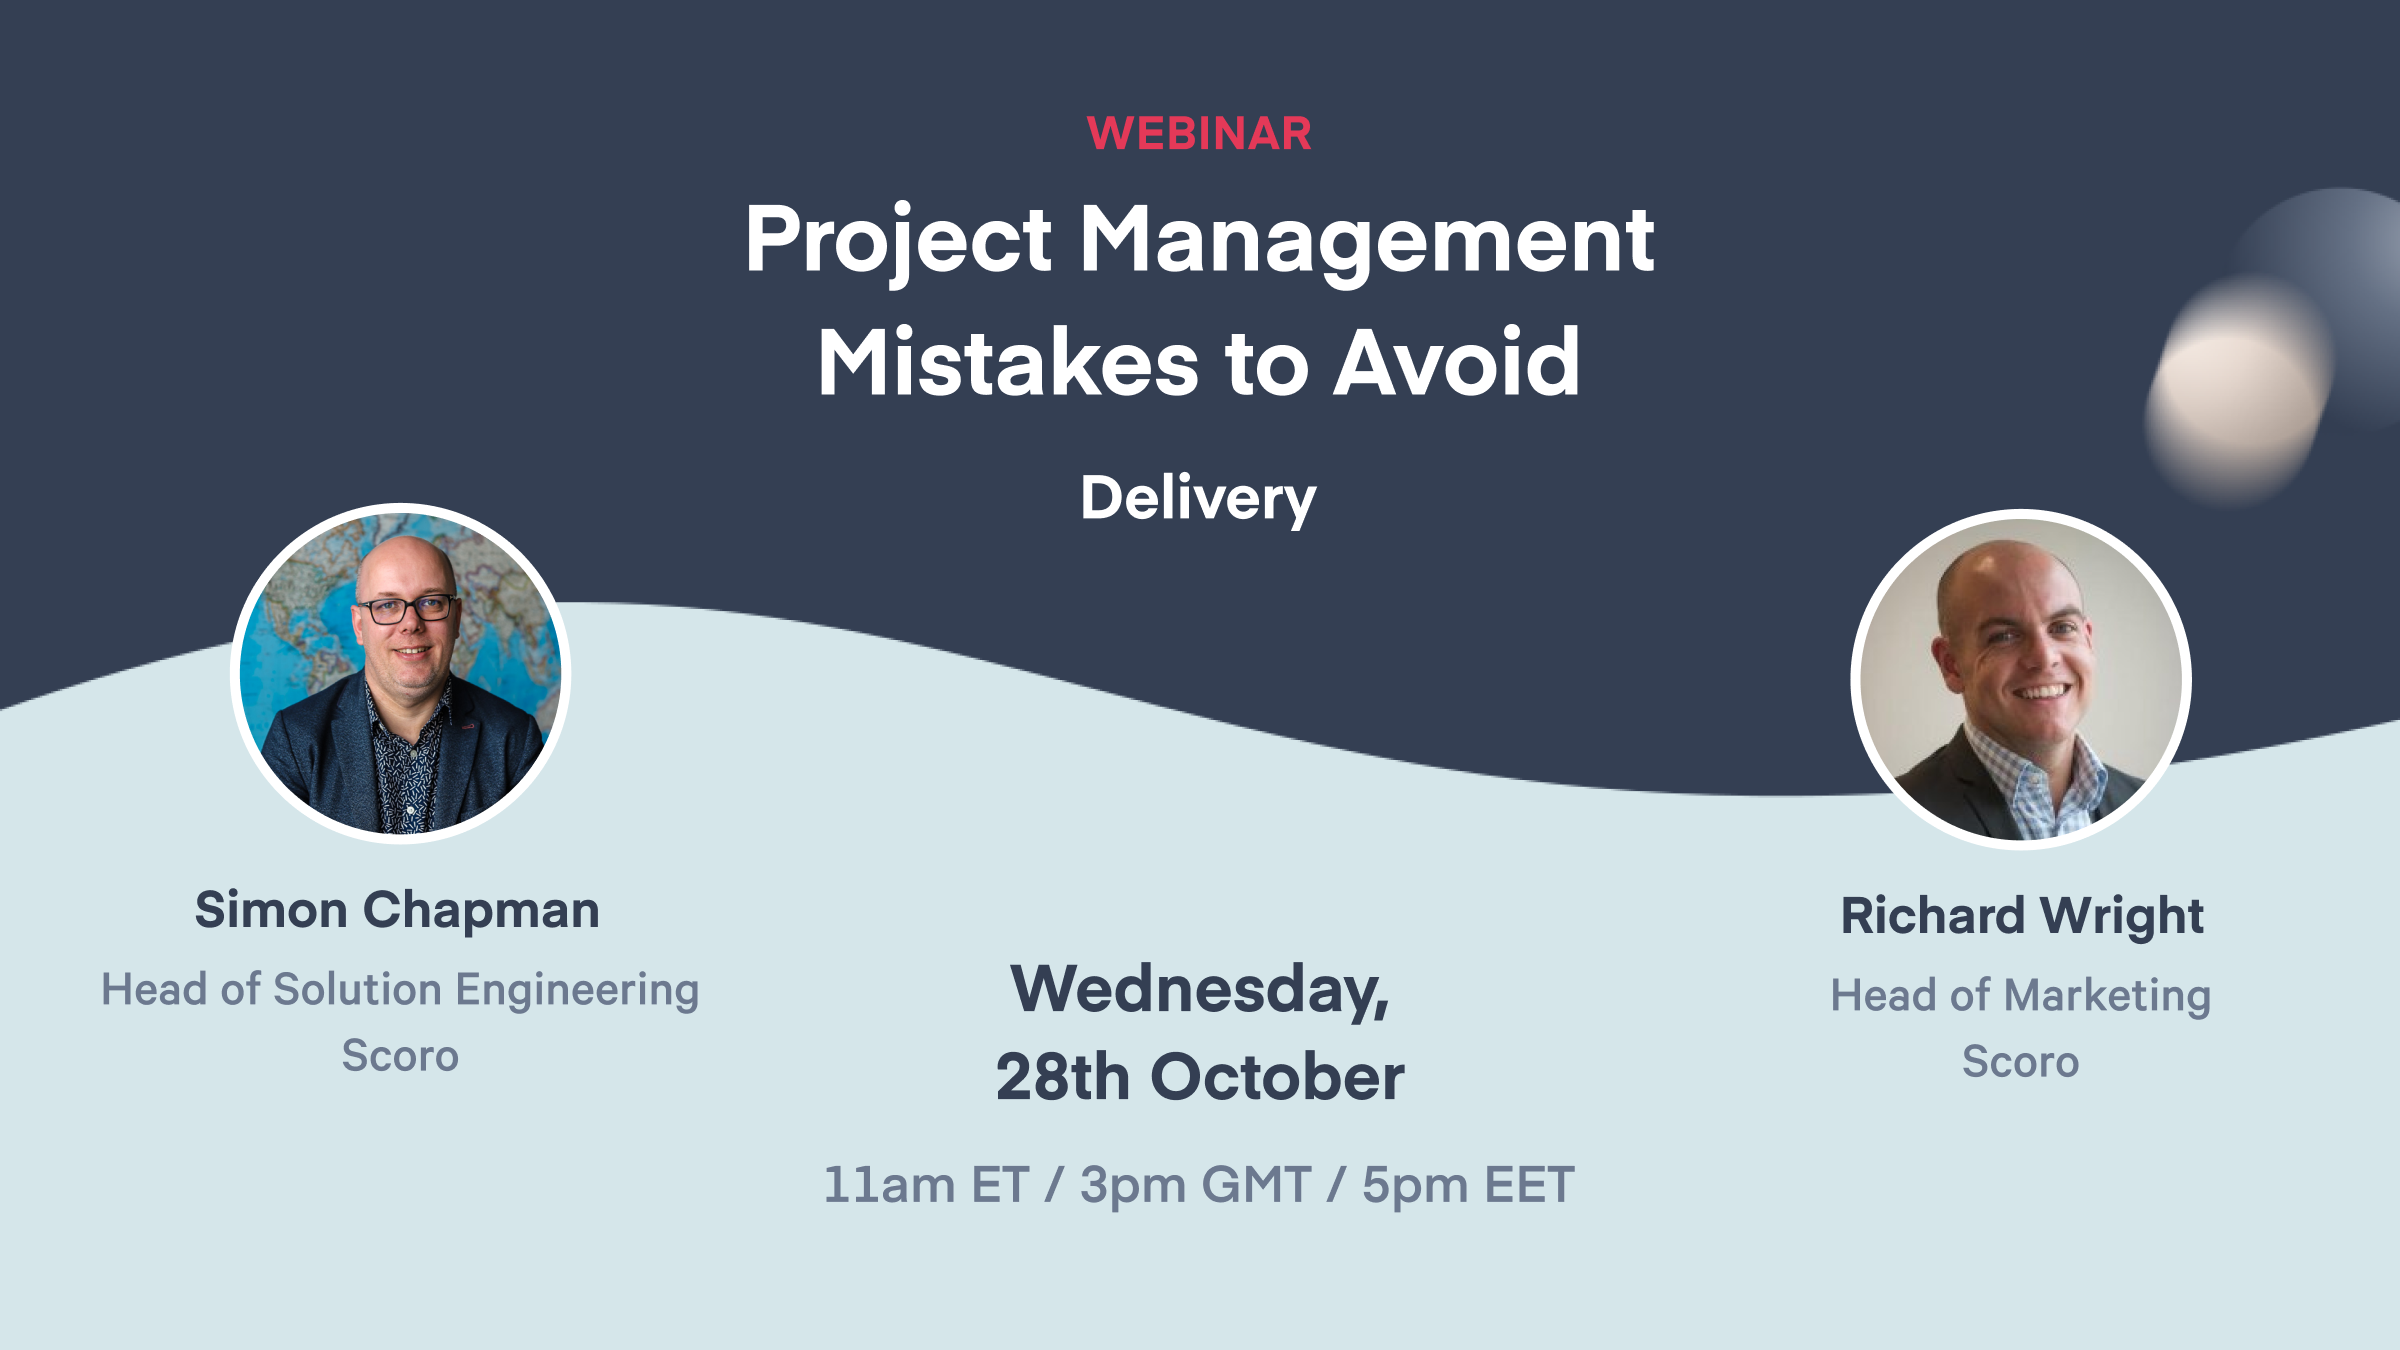 Project Management Mistakes to Avoid: Delivery